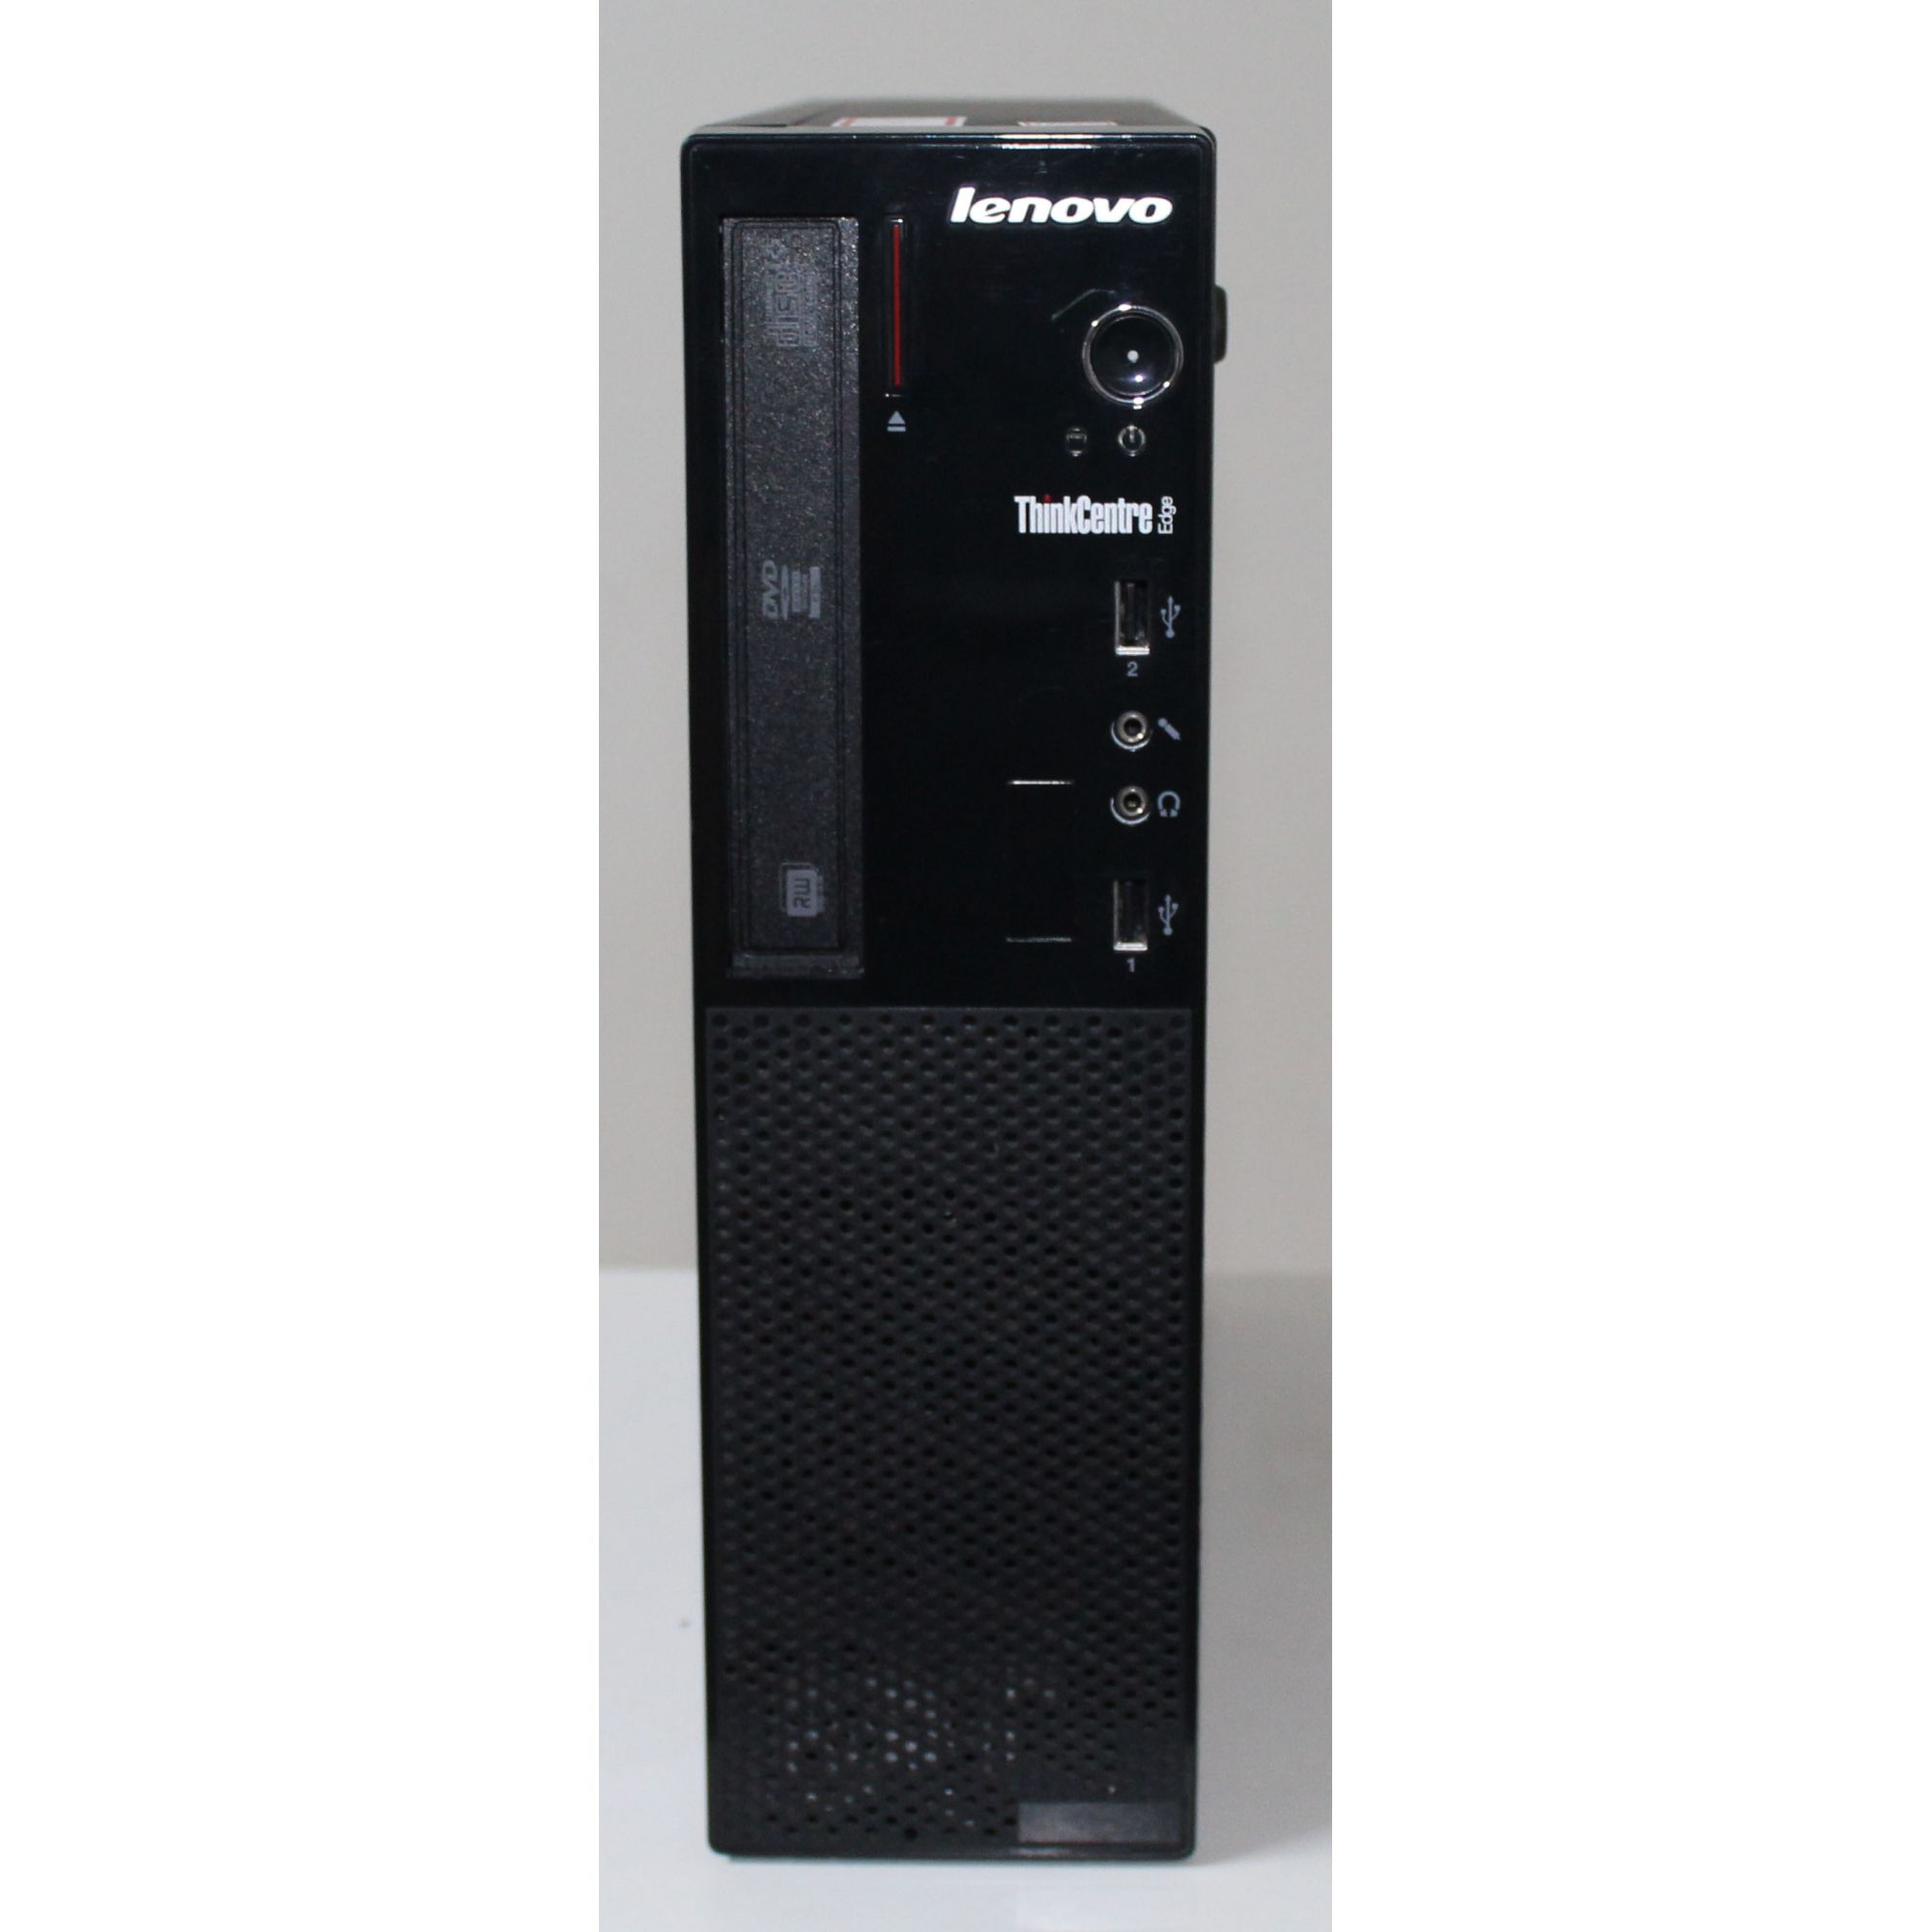 Computador Lenovo ThinkCentre Edge72 i5 4430S 2,7Ghz 16GB HD-500GB